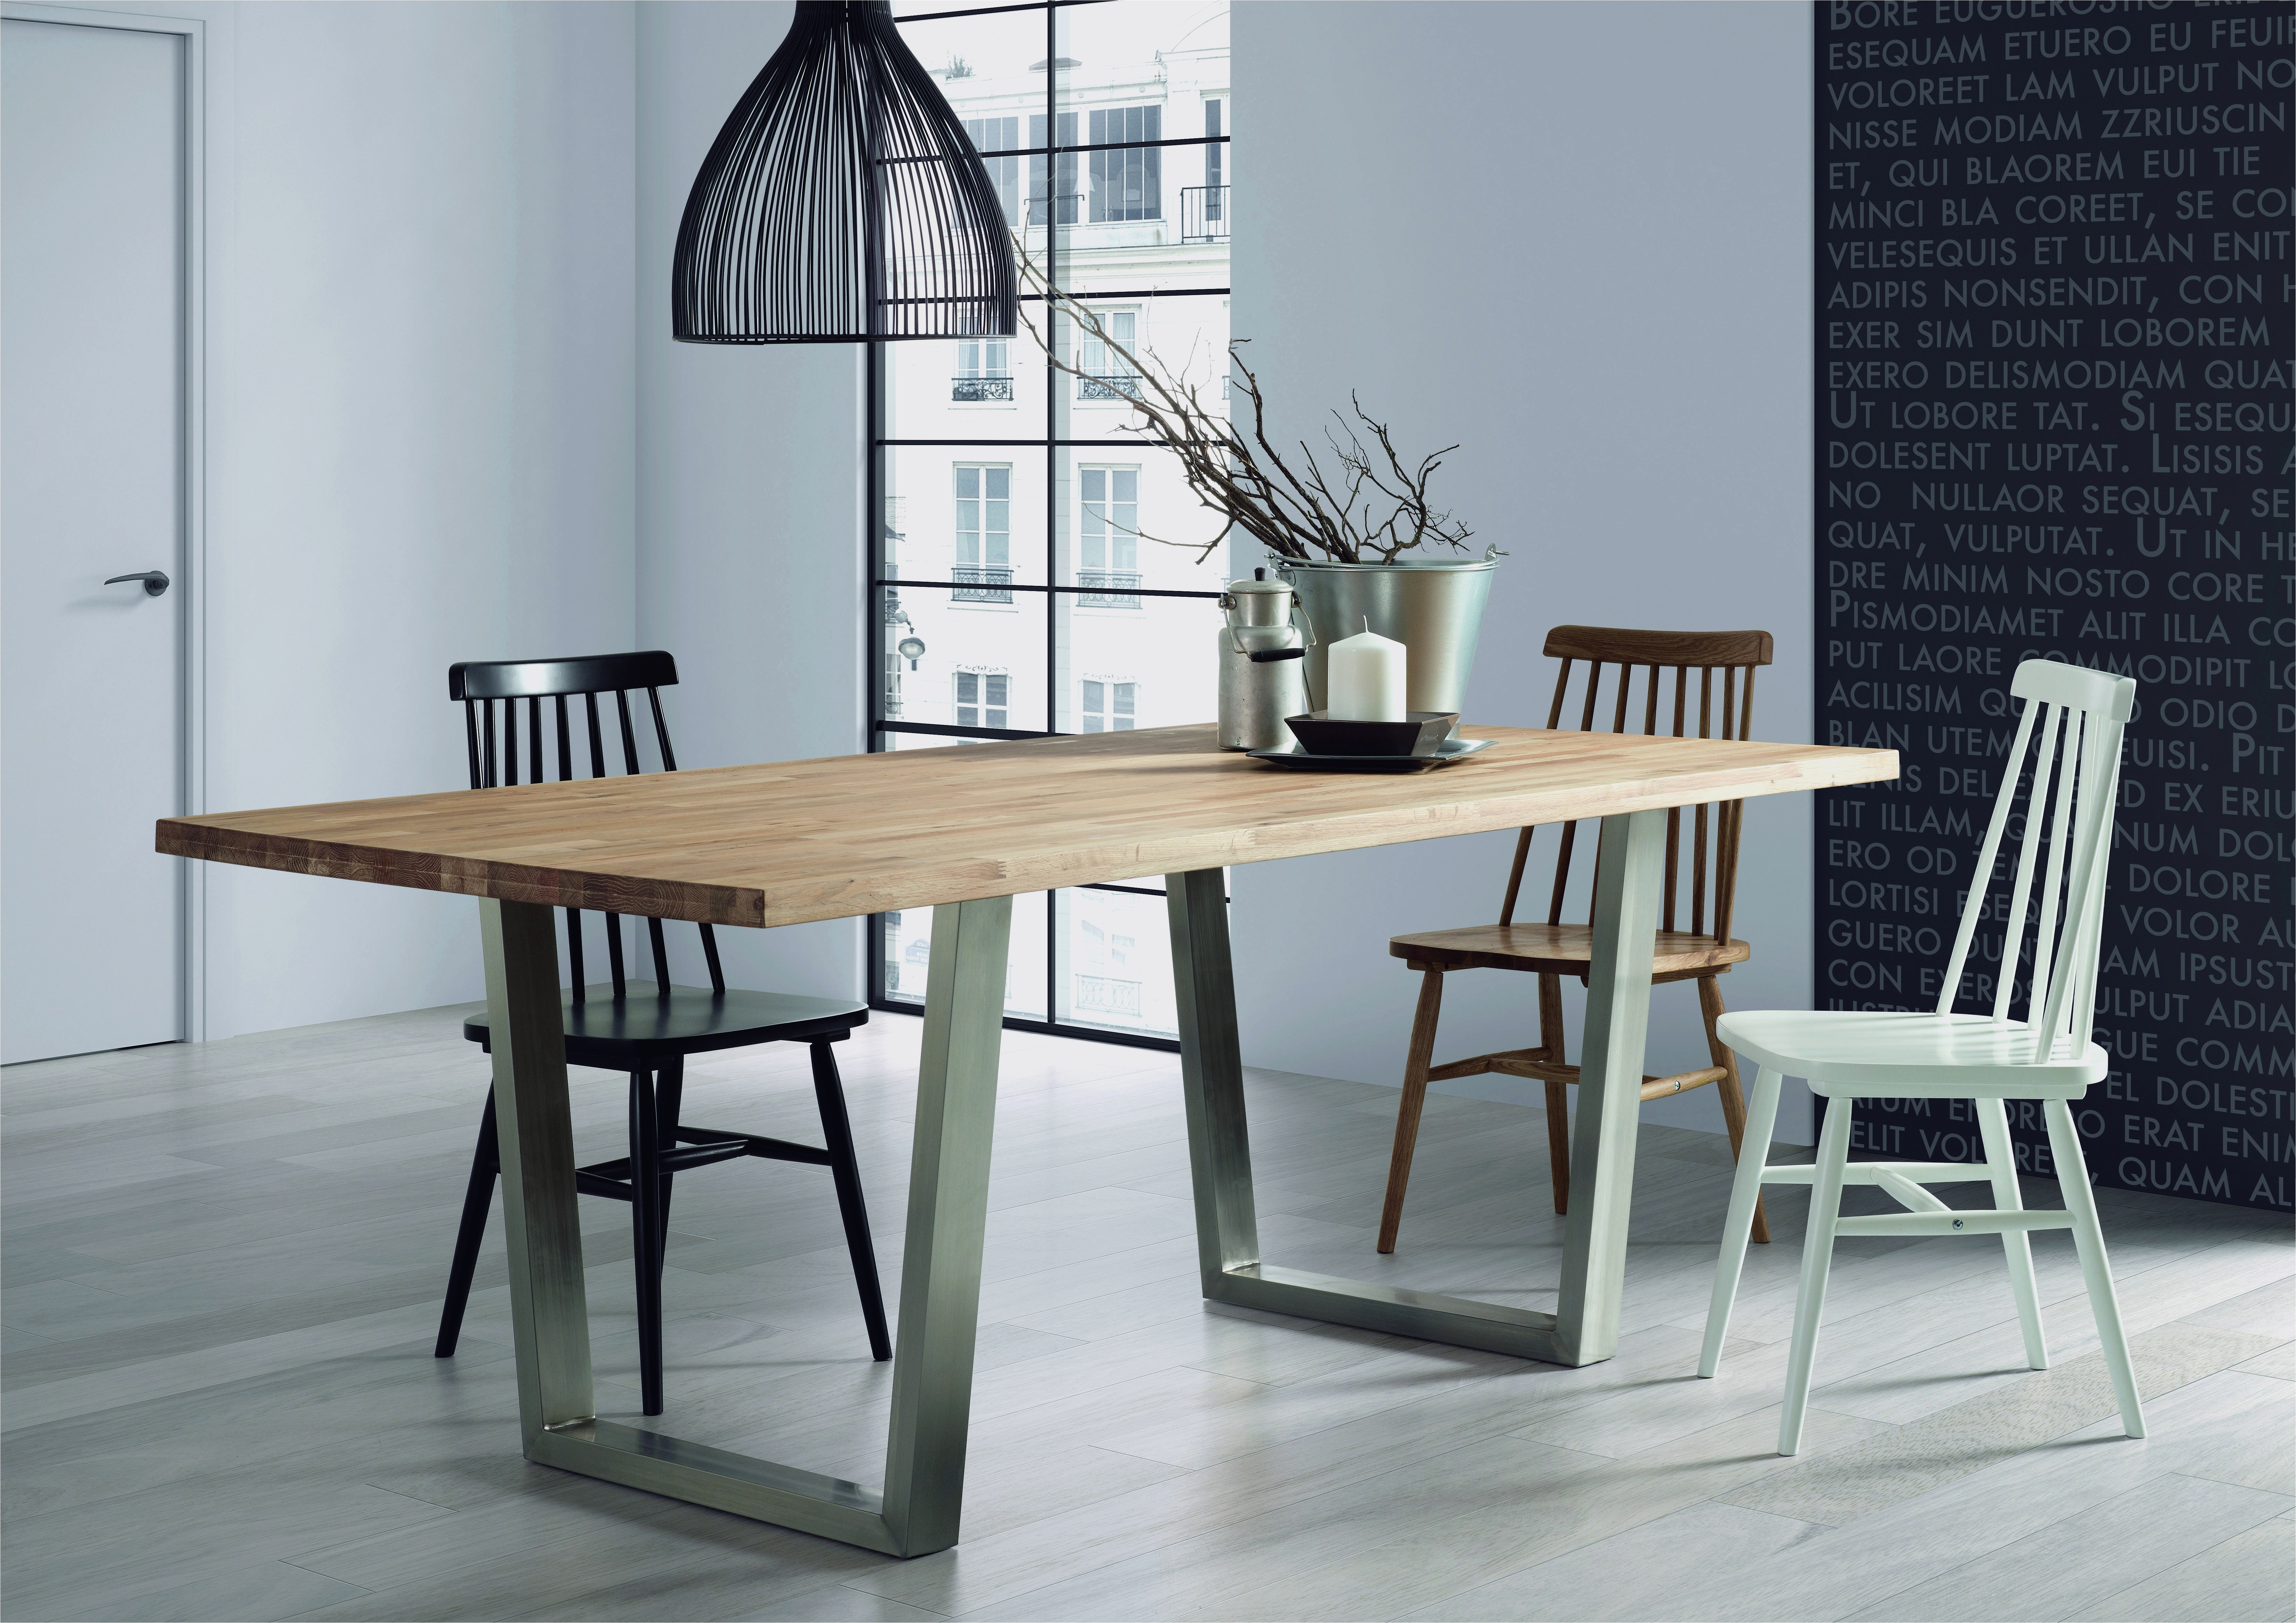 Table Salon Ikea Luxe Modern Ikea Dining Table and Chairs fortable with Regard to Ikea Dining